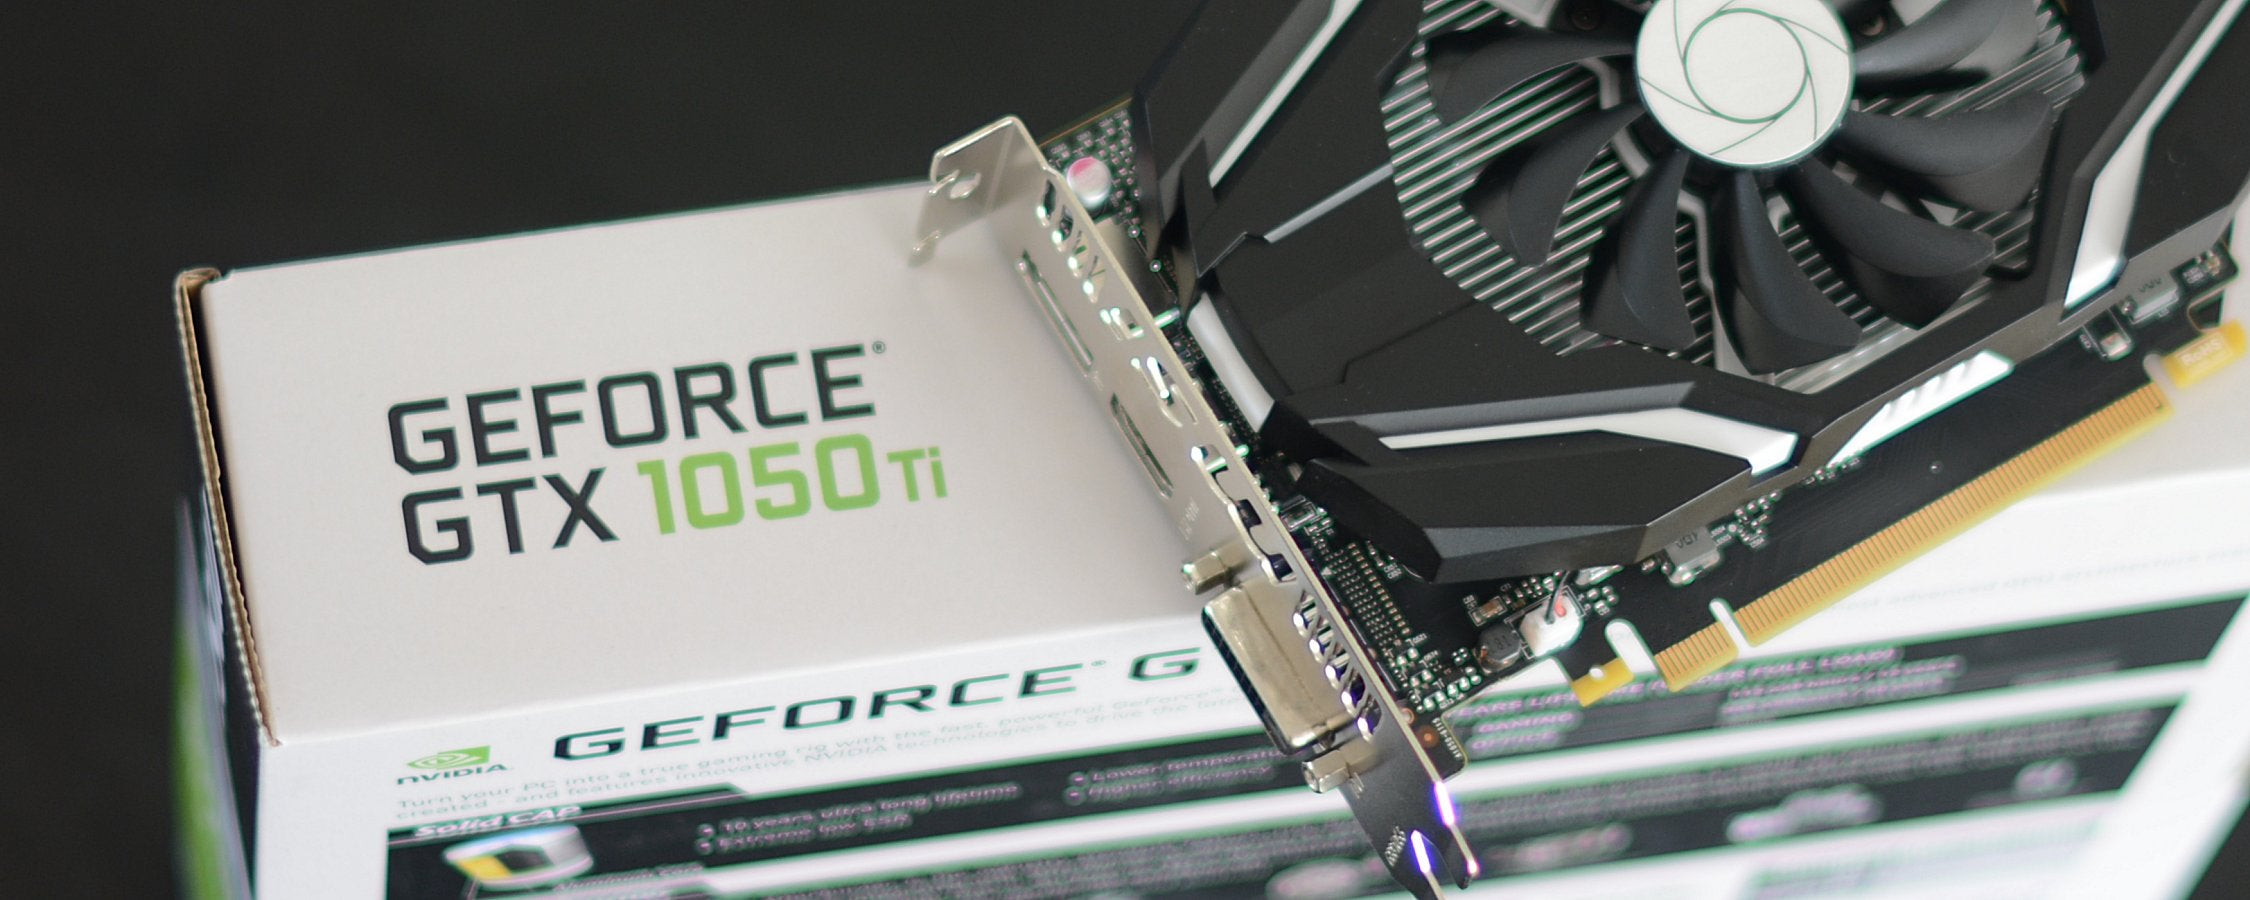 NVIDIA's GTX 1050 And 1050 Ti Review: Entry-Level PC Gaming For The Win